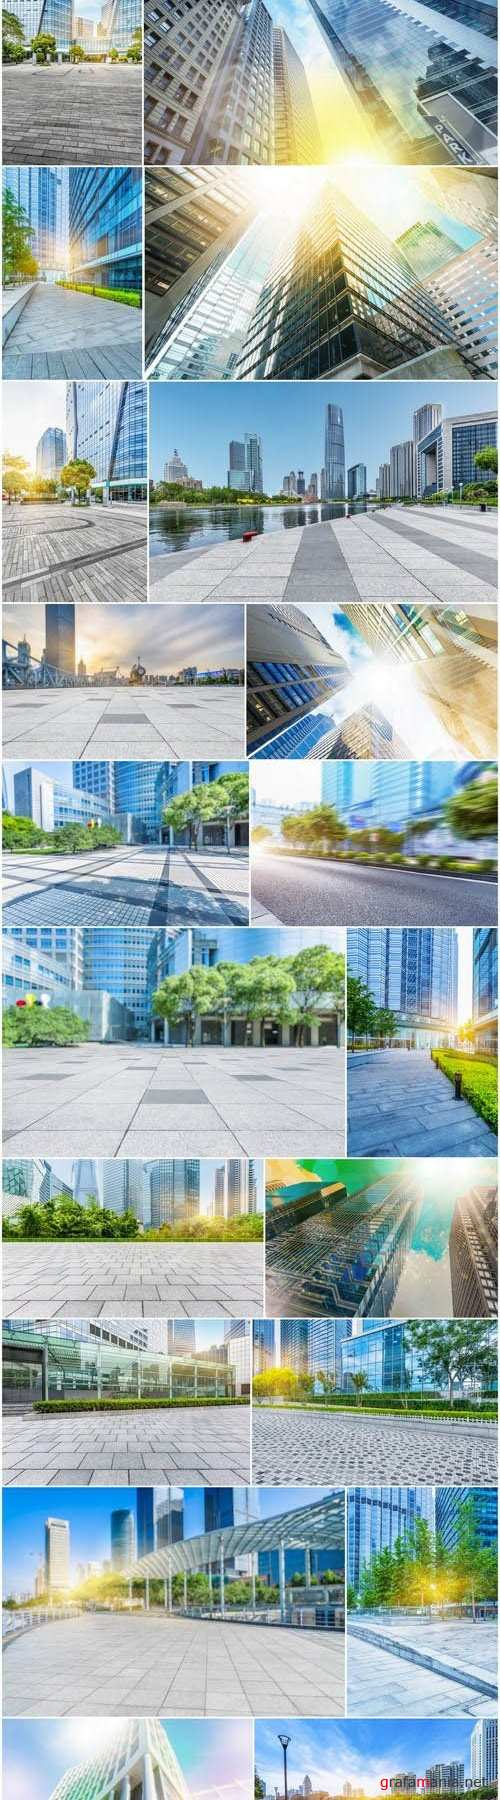 Modern Architecture 7 - Set of 30xUHQ JPEG Professional Stock Images